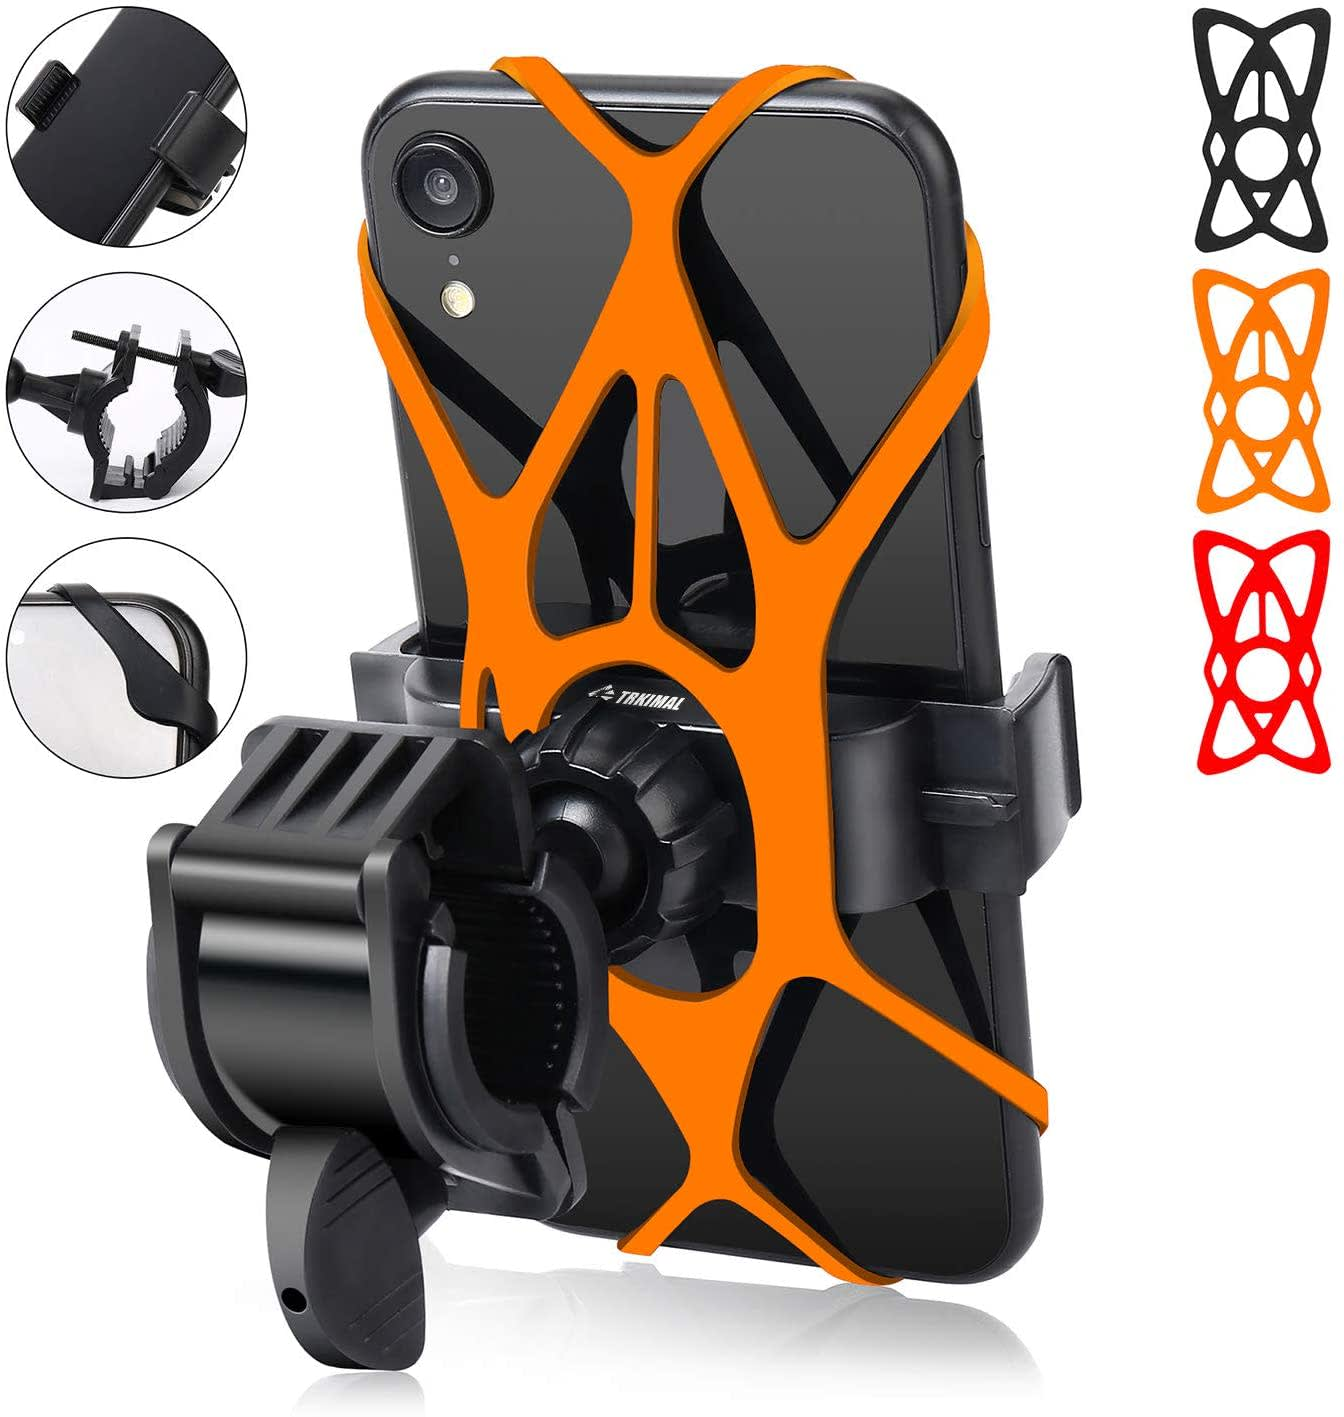 Trkimal Universal Bike Phone Mount